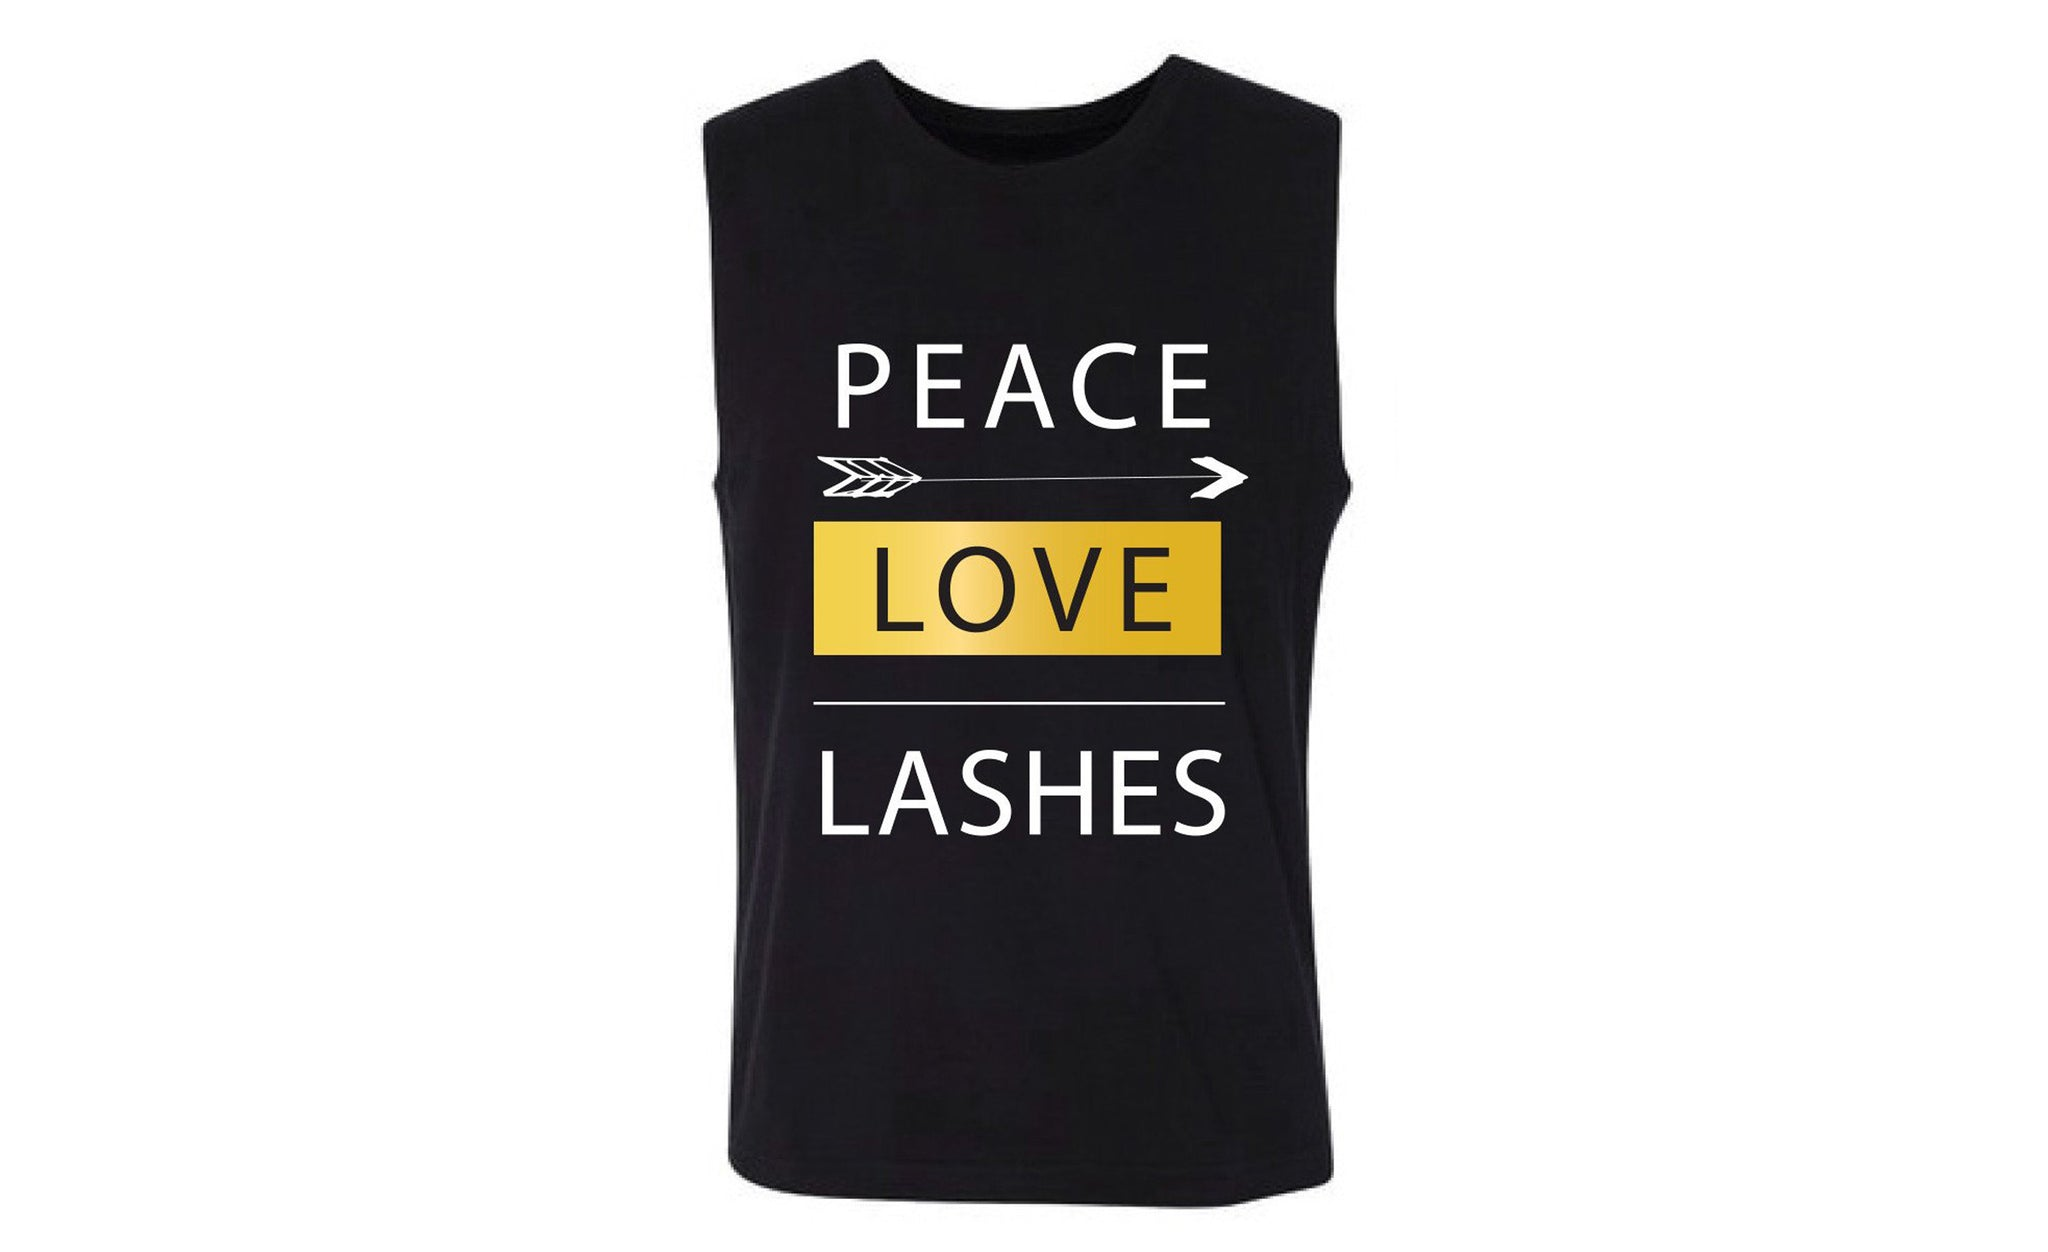 PEACE LOVE LASHES Women's Muscle Tank